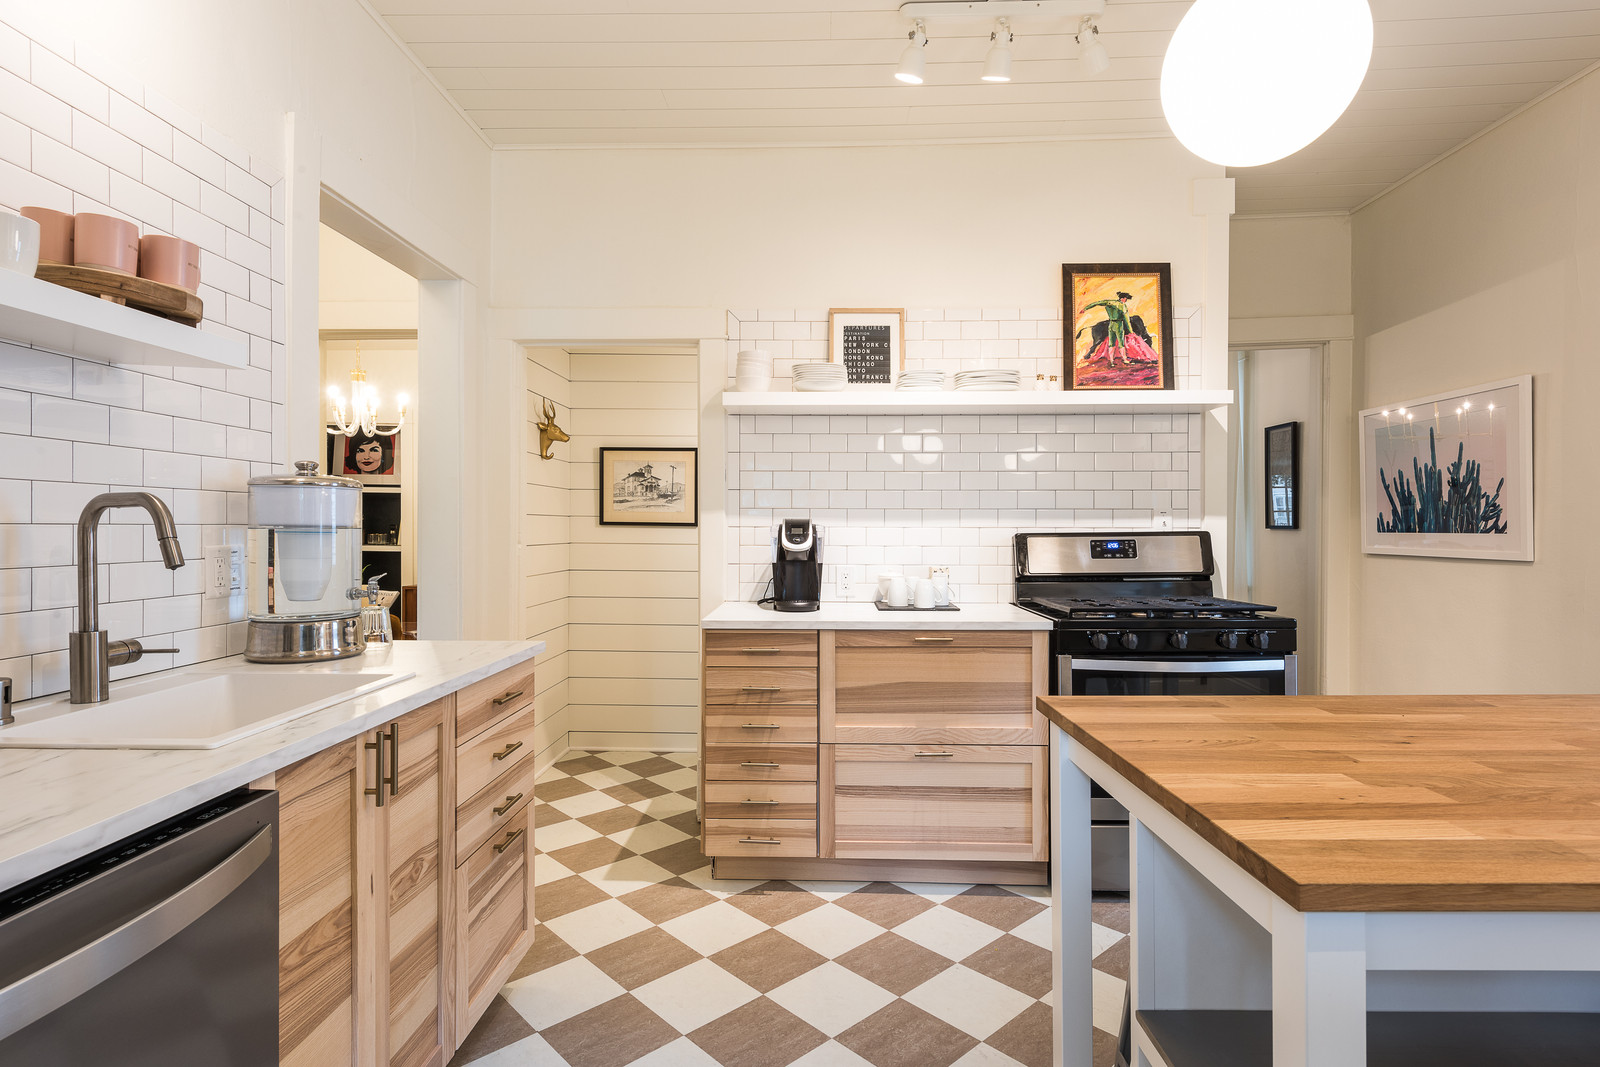 Image result for hygge kitchen